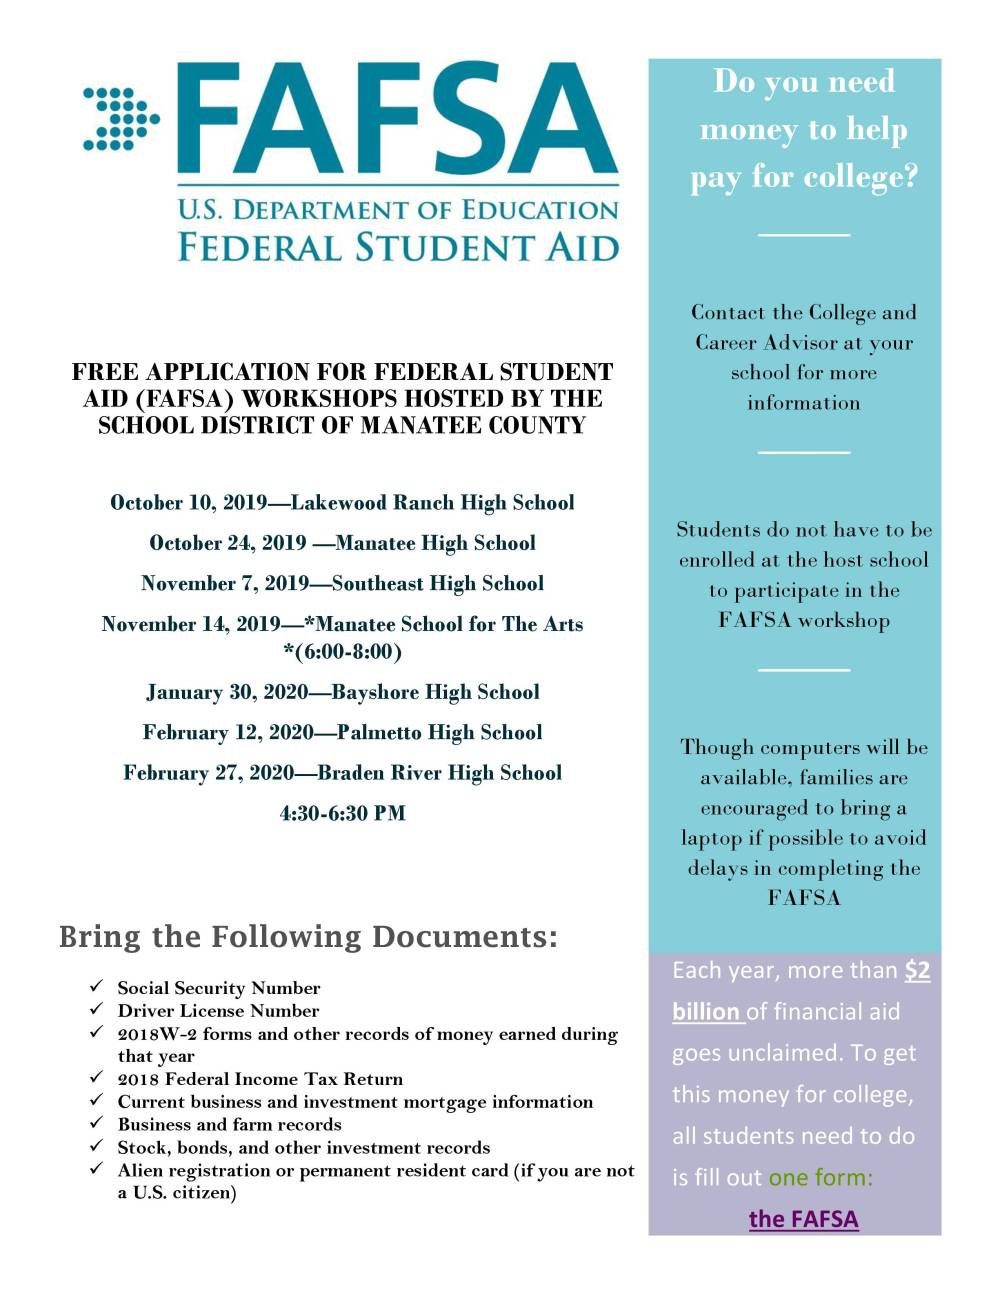 2019-2020 FAFSA Workshop Flyer.jpg